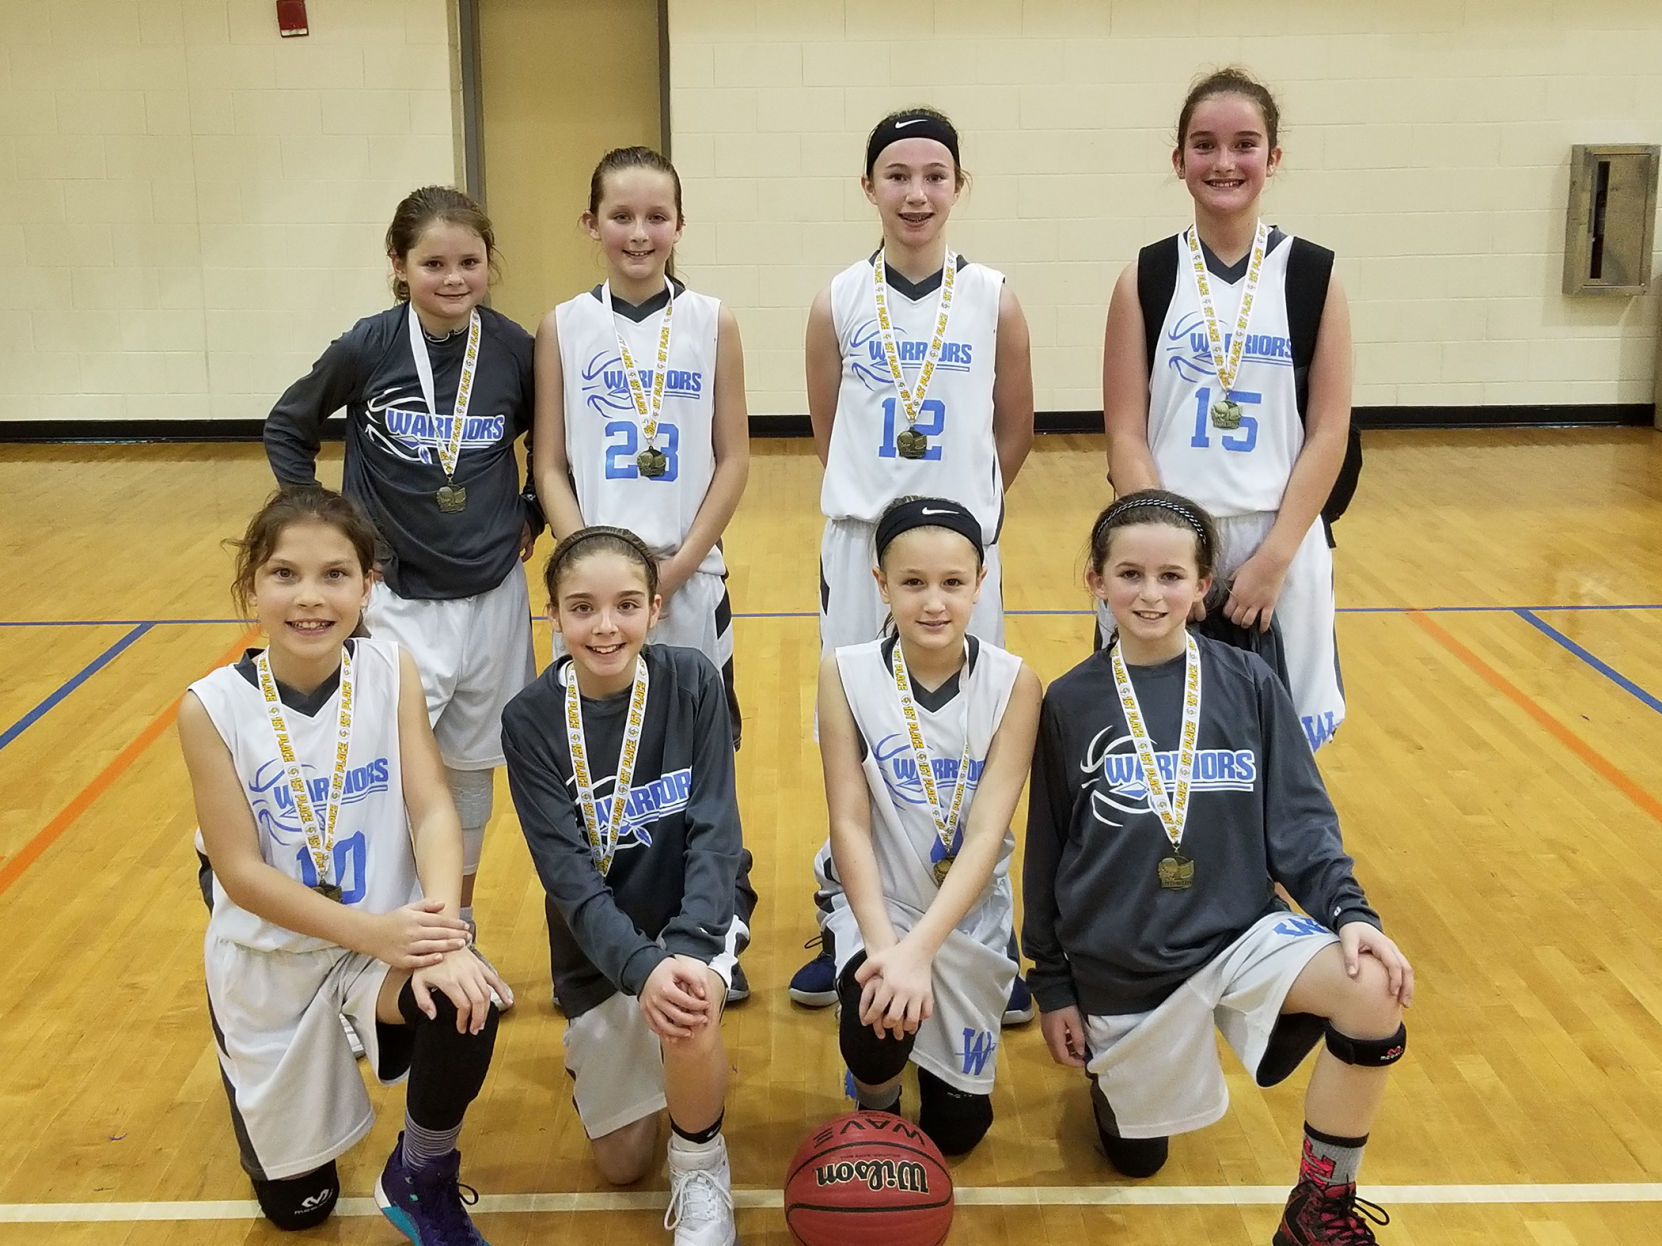 Watauga Warriors win WinstonSalem tournament Blowing Rocket